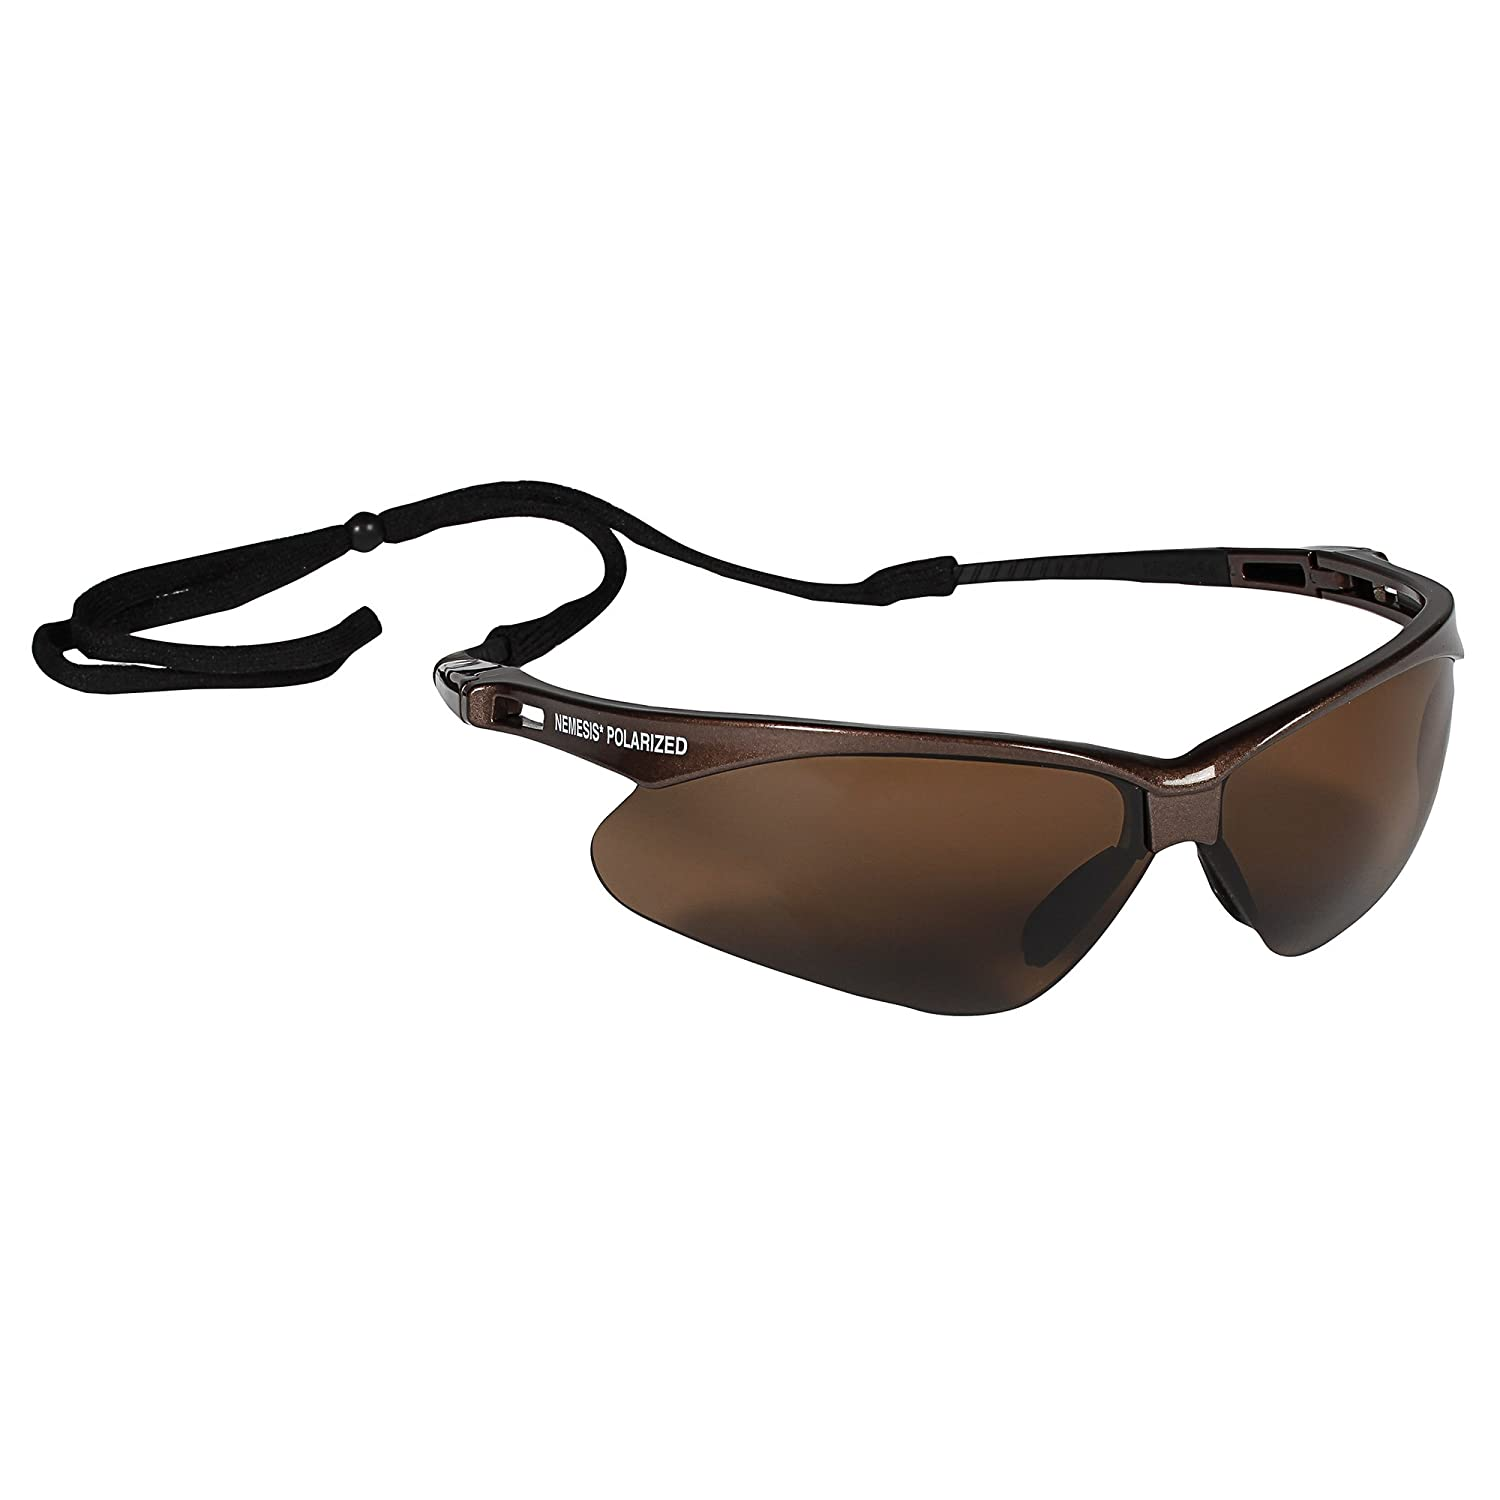 c27e8f5d4deb Jackson Safety V30 Nemesis Polarized Safety Glasses (28637 ...